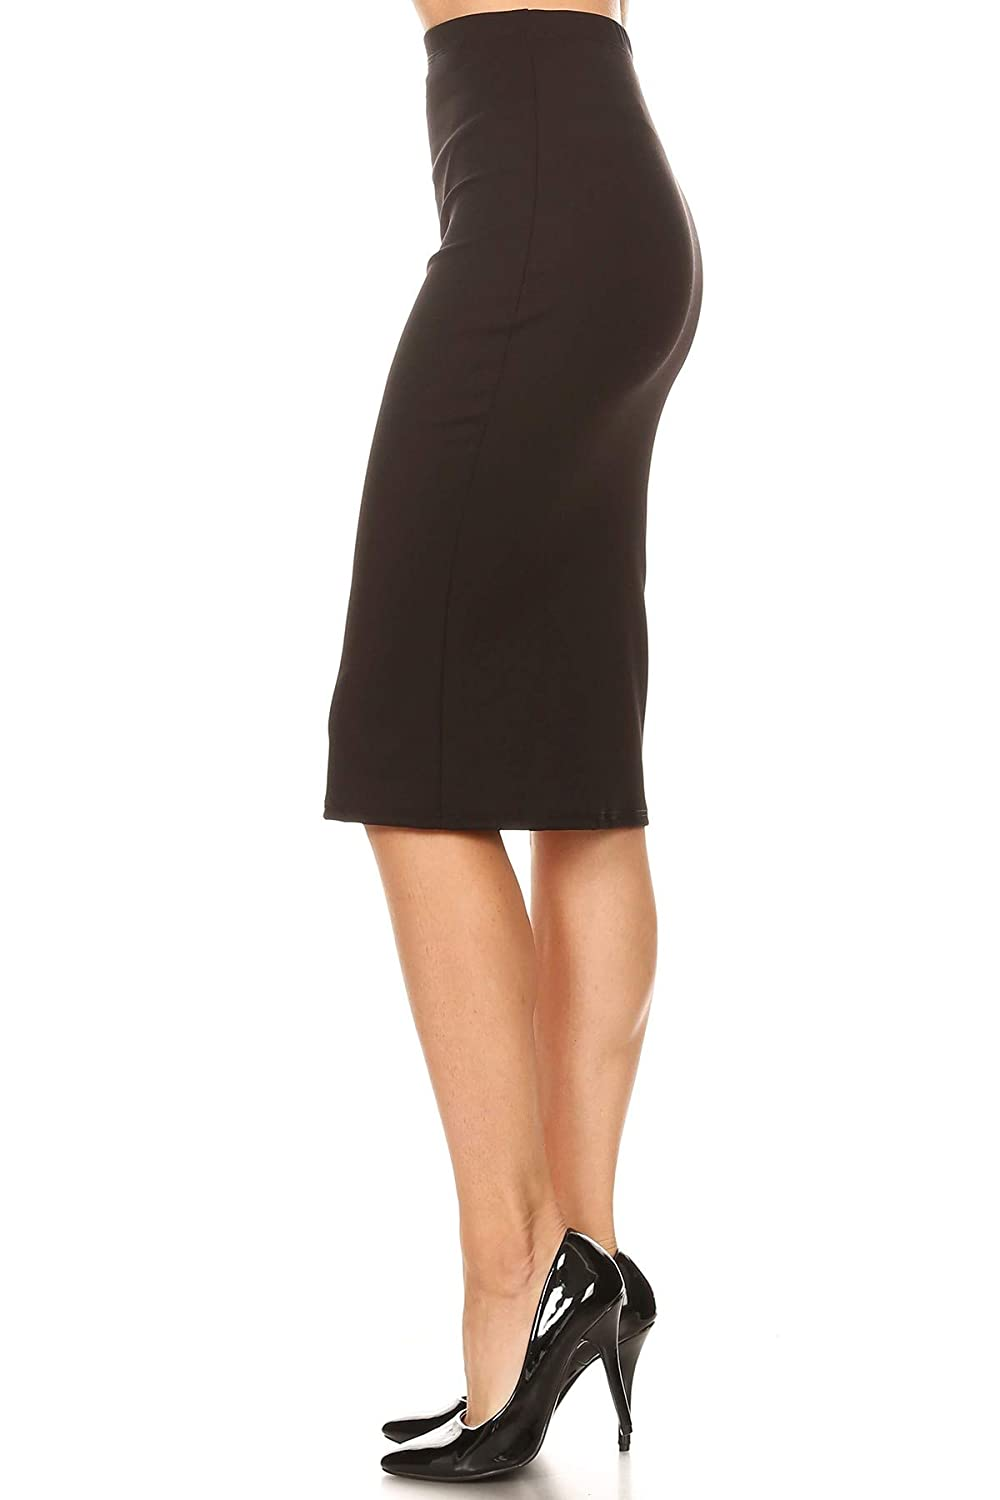 2f80d0d5ac2c Via Jay Women's Solid Basic High Waisted Pencil Skirt at Amazon Women's  Clothing store: